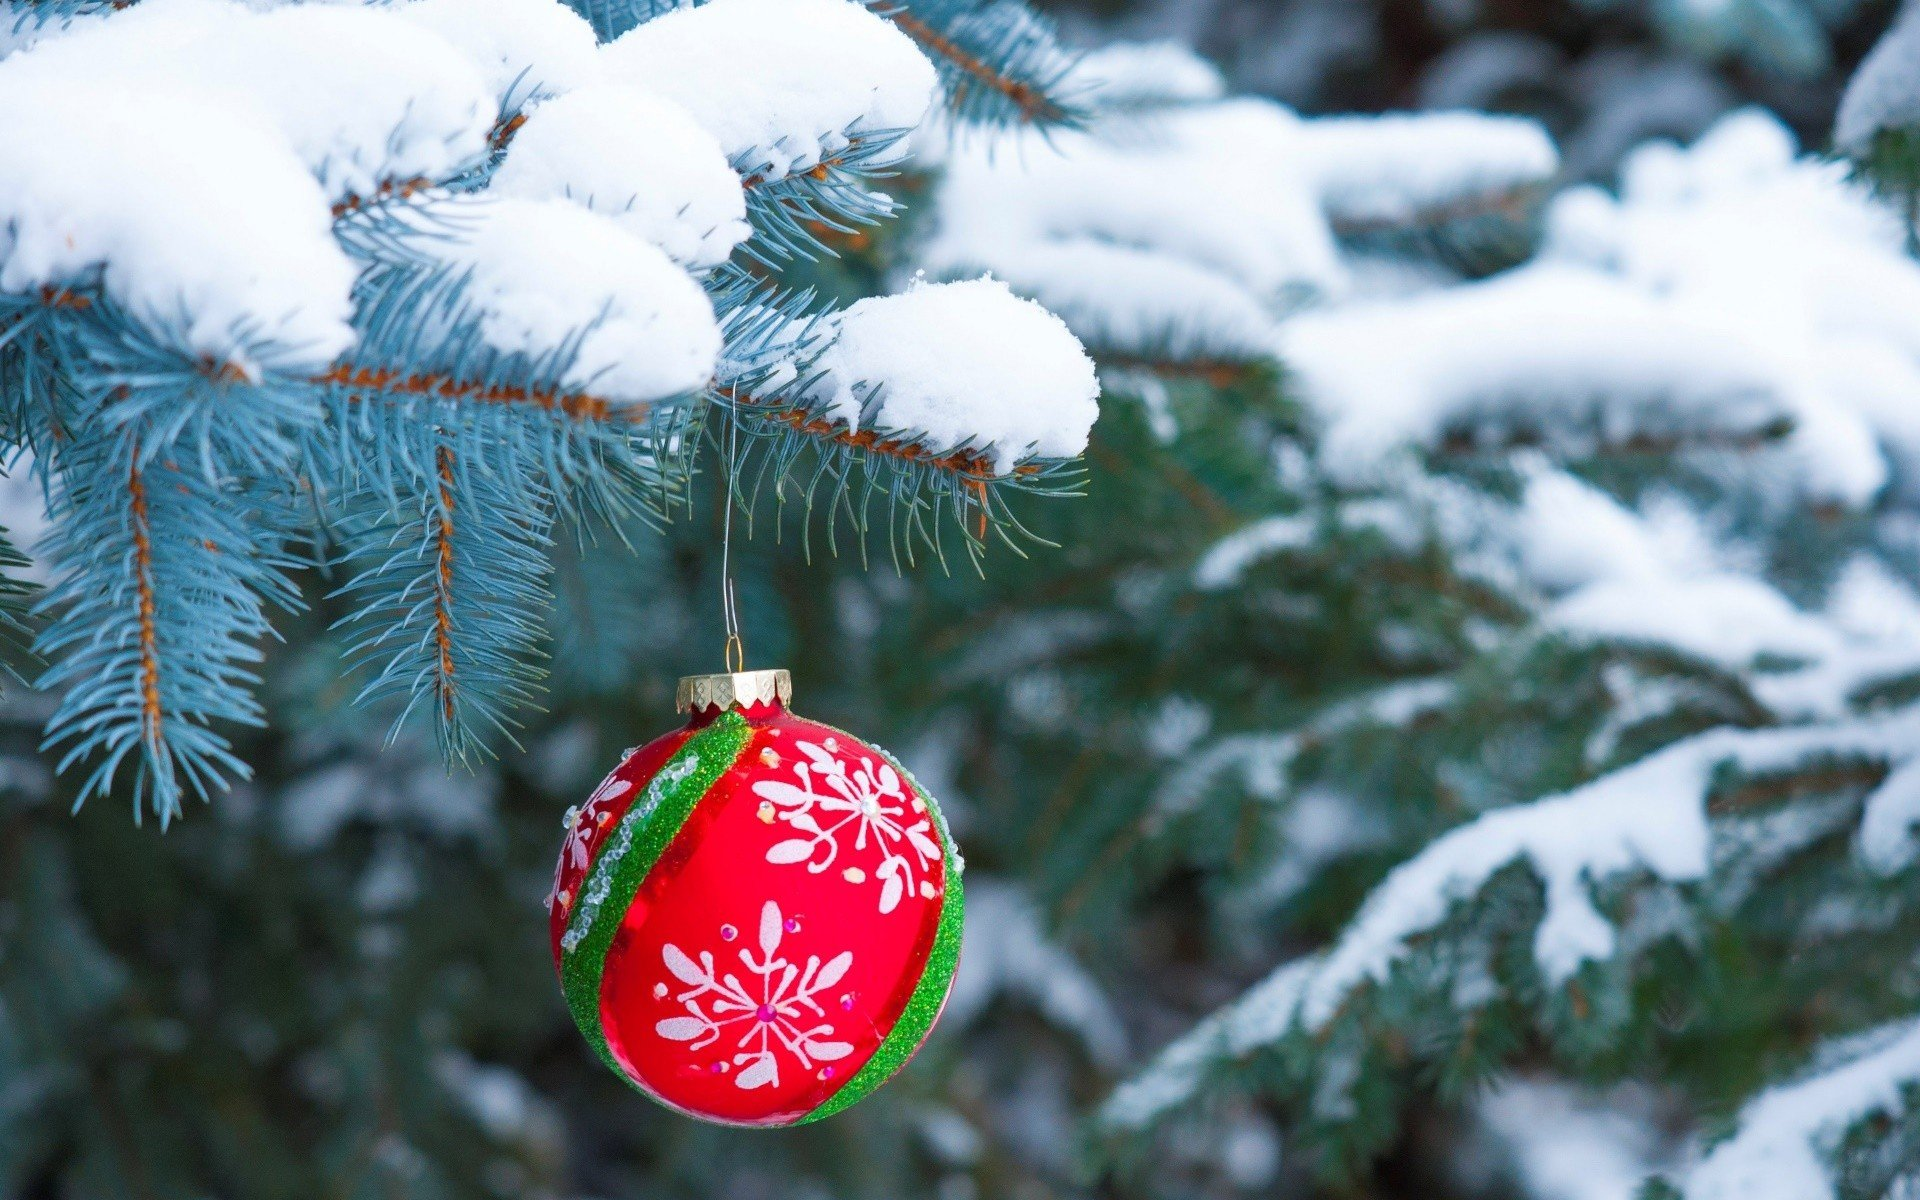 Winter Christmas Backgrounds: Winter, Snow, Christmas Ornaments, Christmas HD Wallpapers